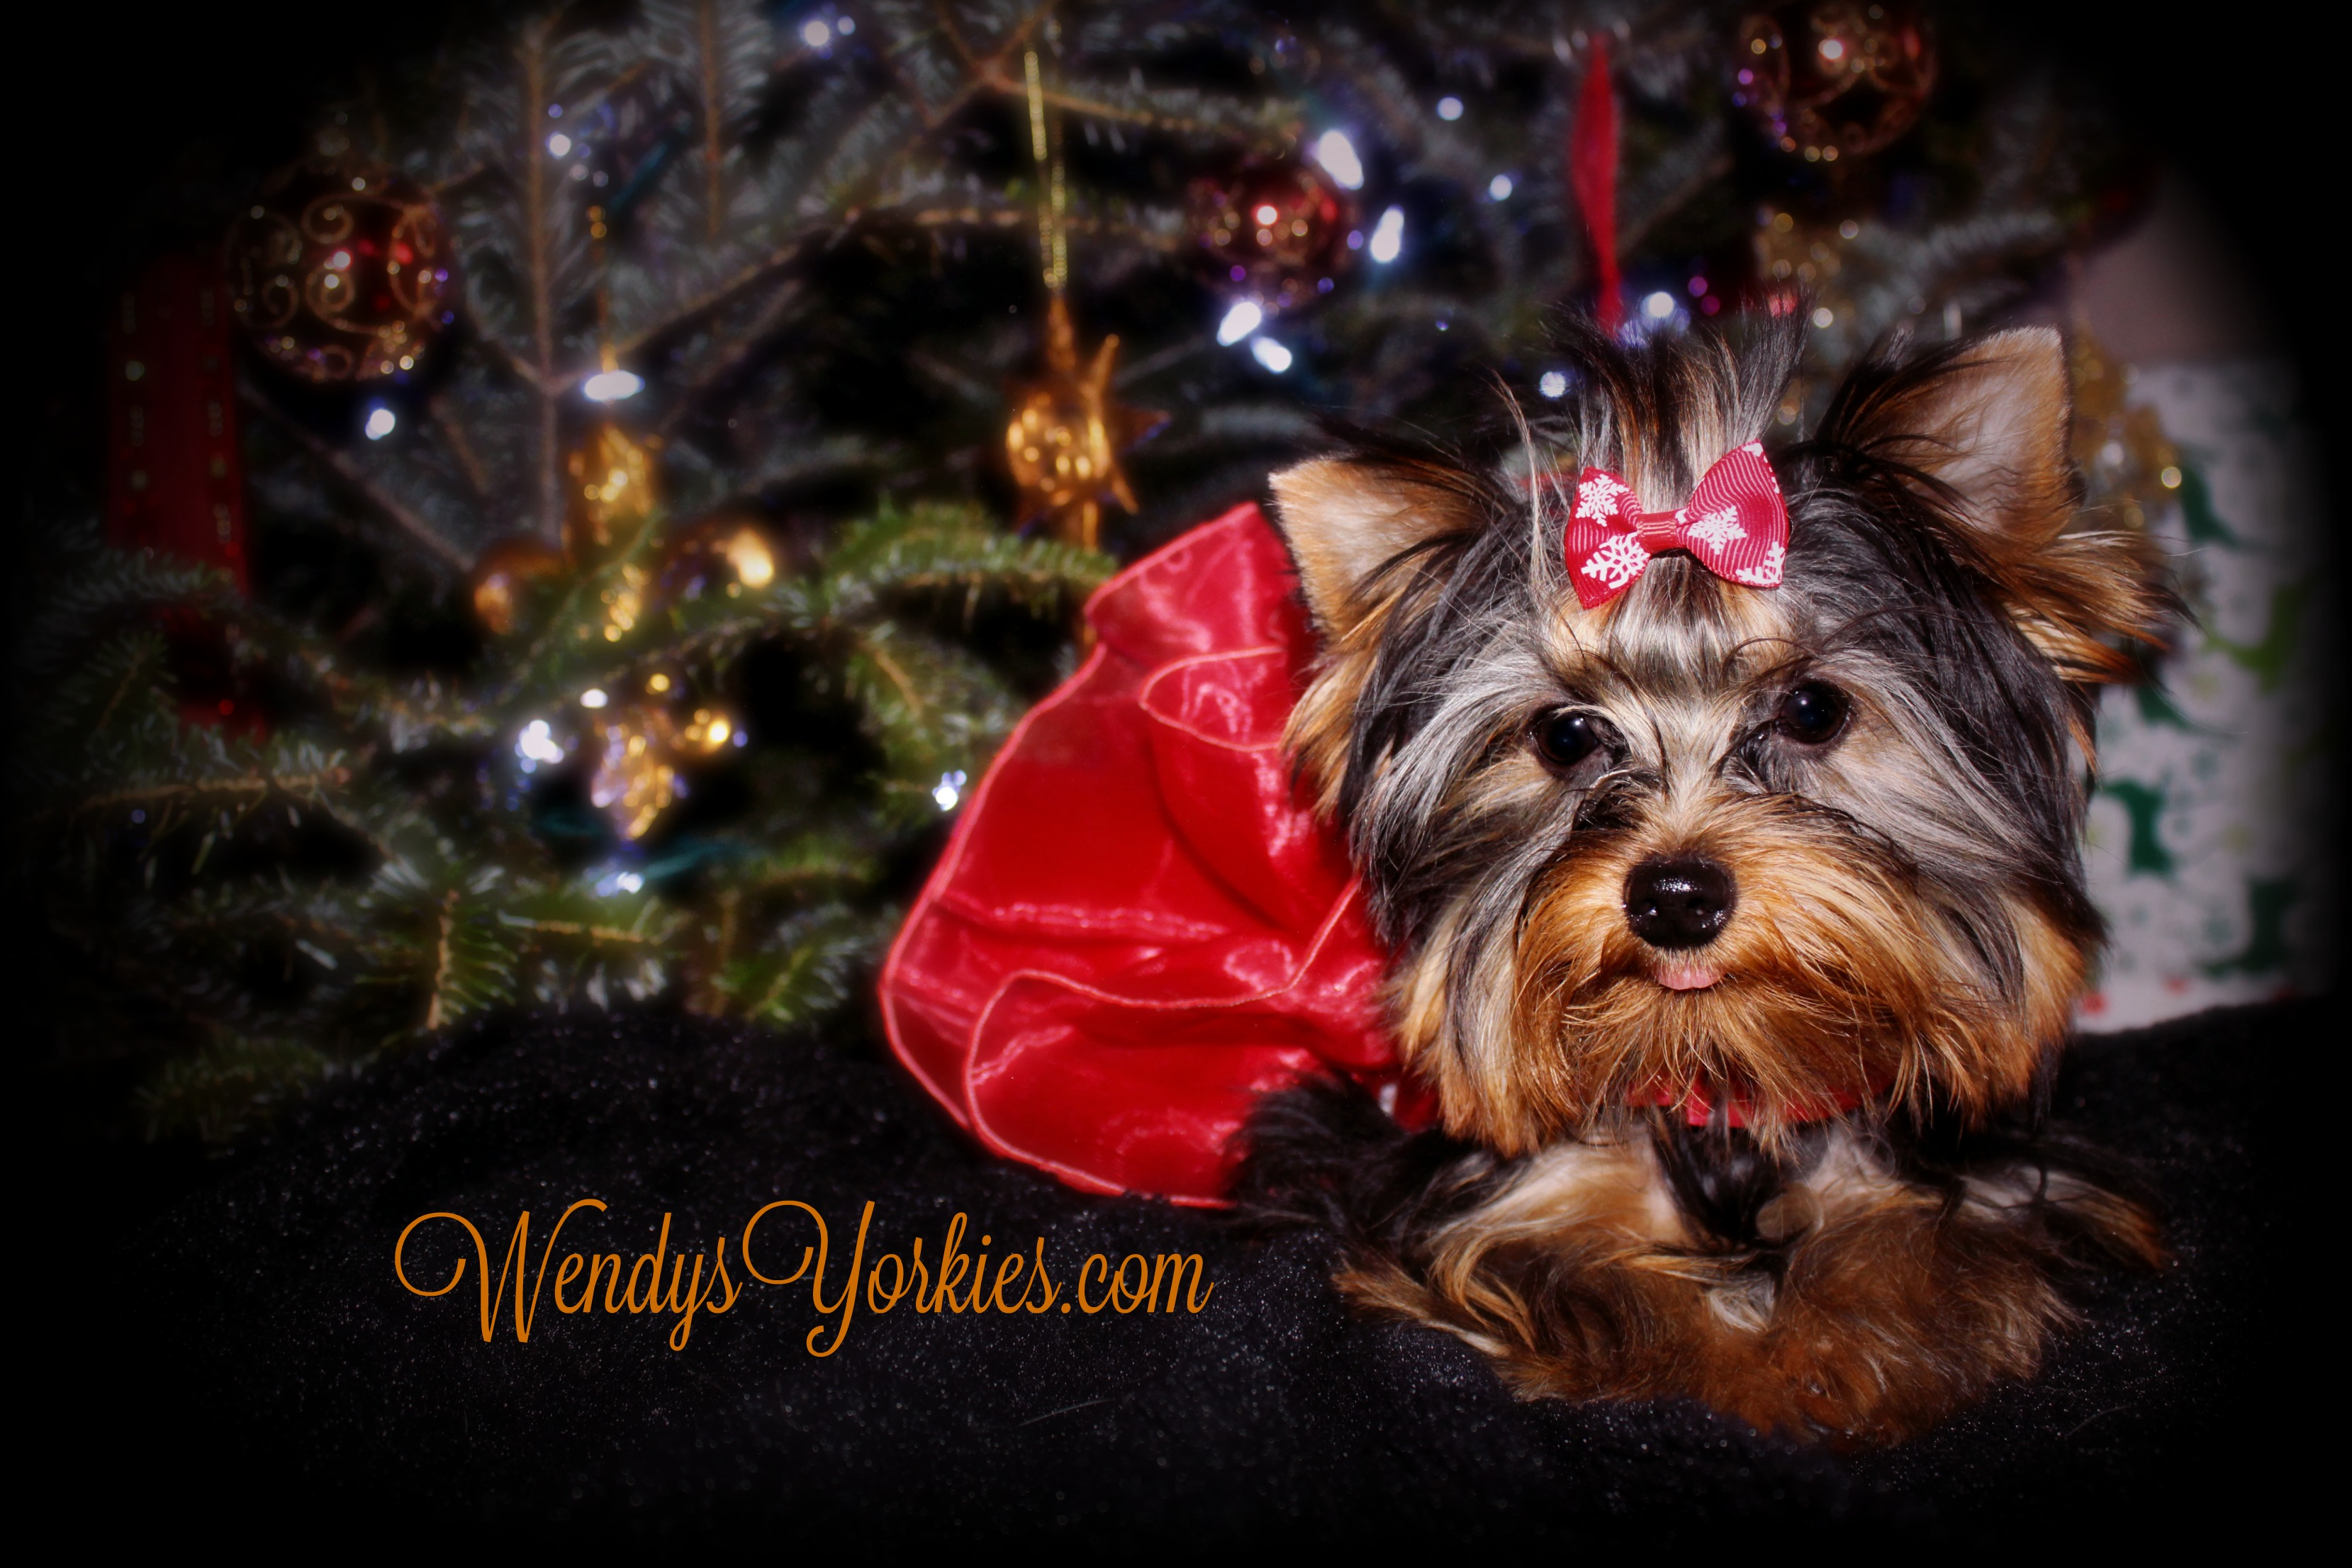 Yorkie puppies for sale, WendysYorkies.com, Abby2.0